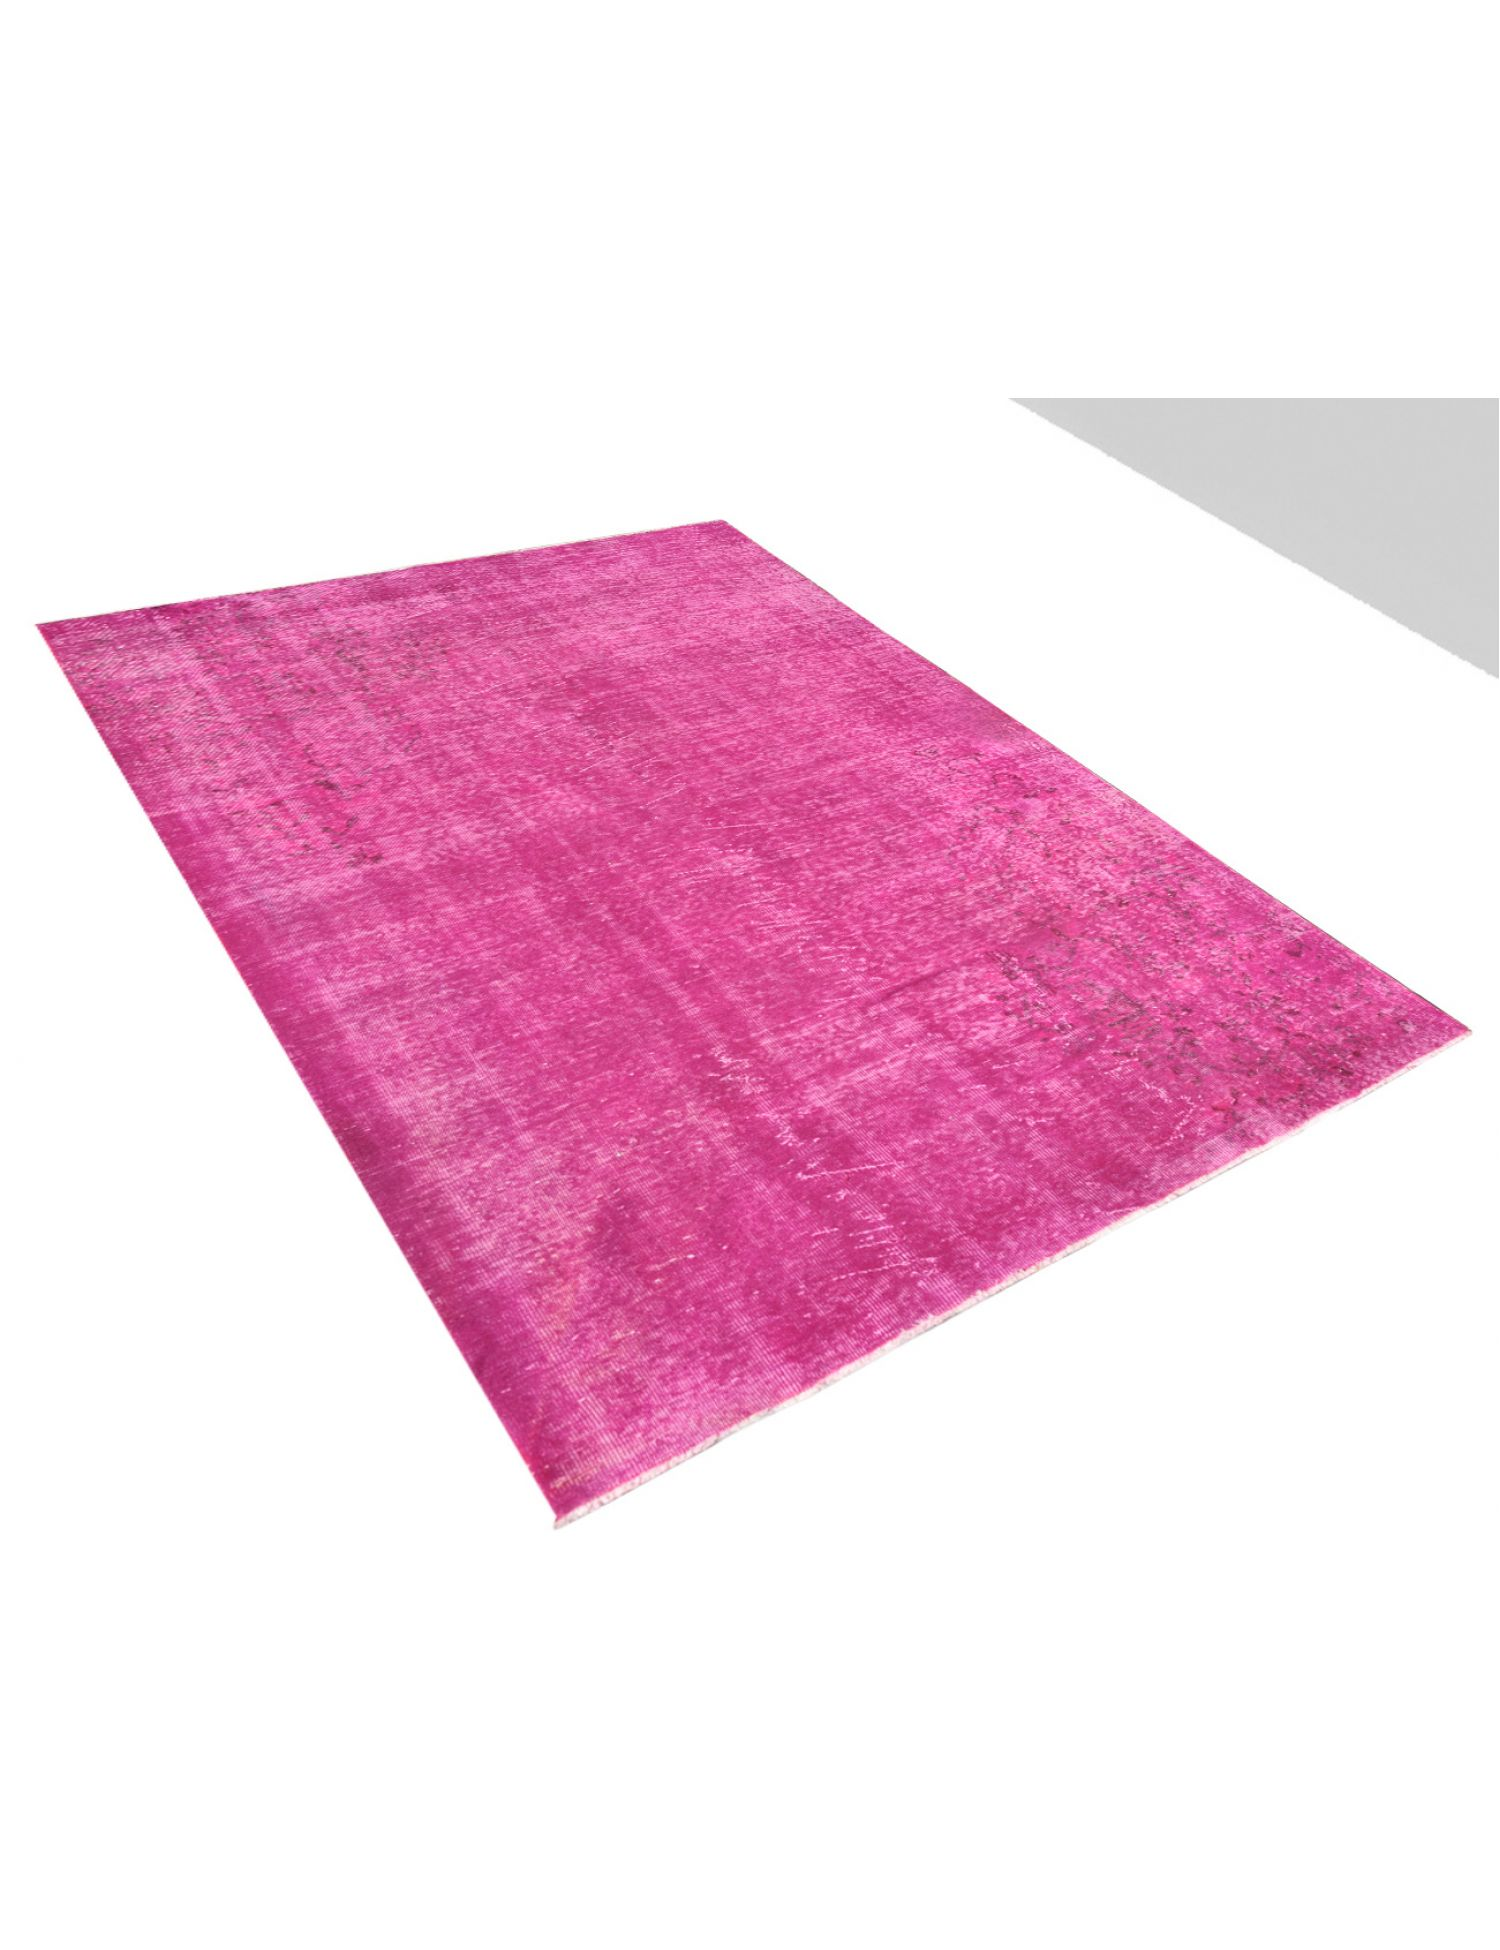 Vintage Carpet  purple <br/>277 x 159 cm